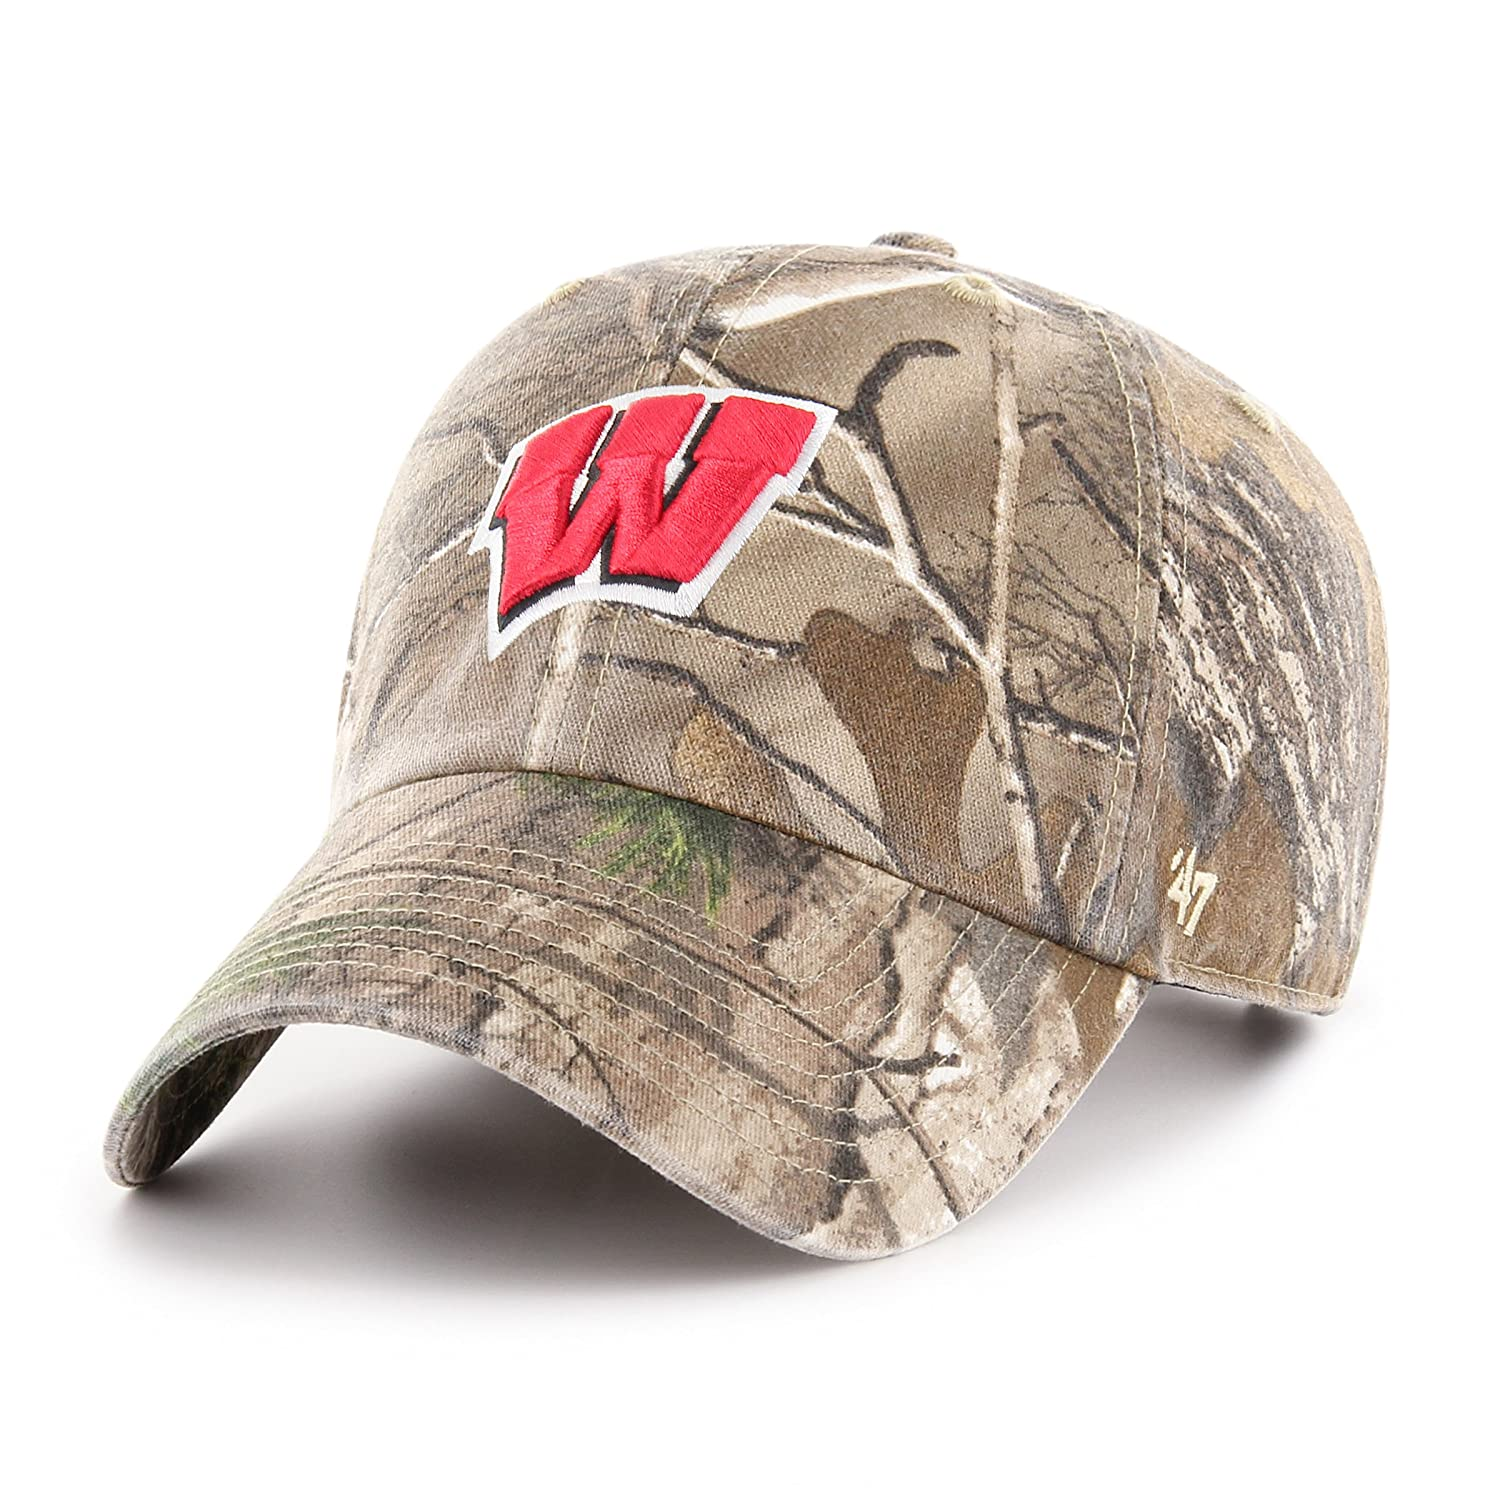 Realtree Camo 47 NCAA Wisconsin Badgers Adult Clean Up Realtree Adjustable Hat One Size